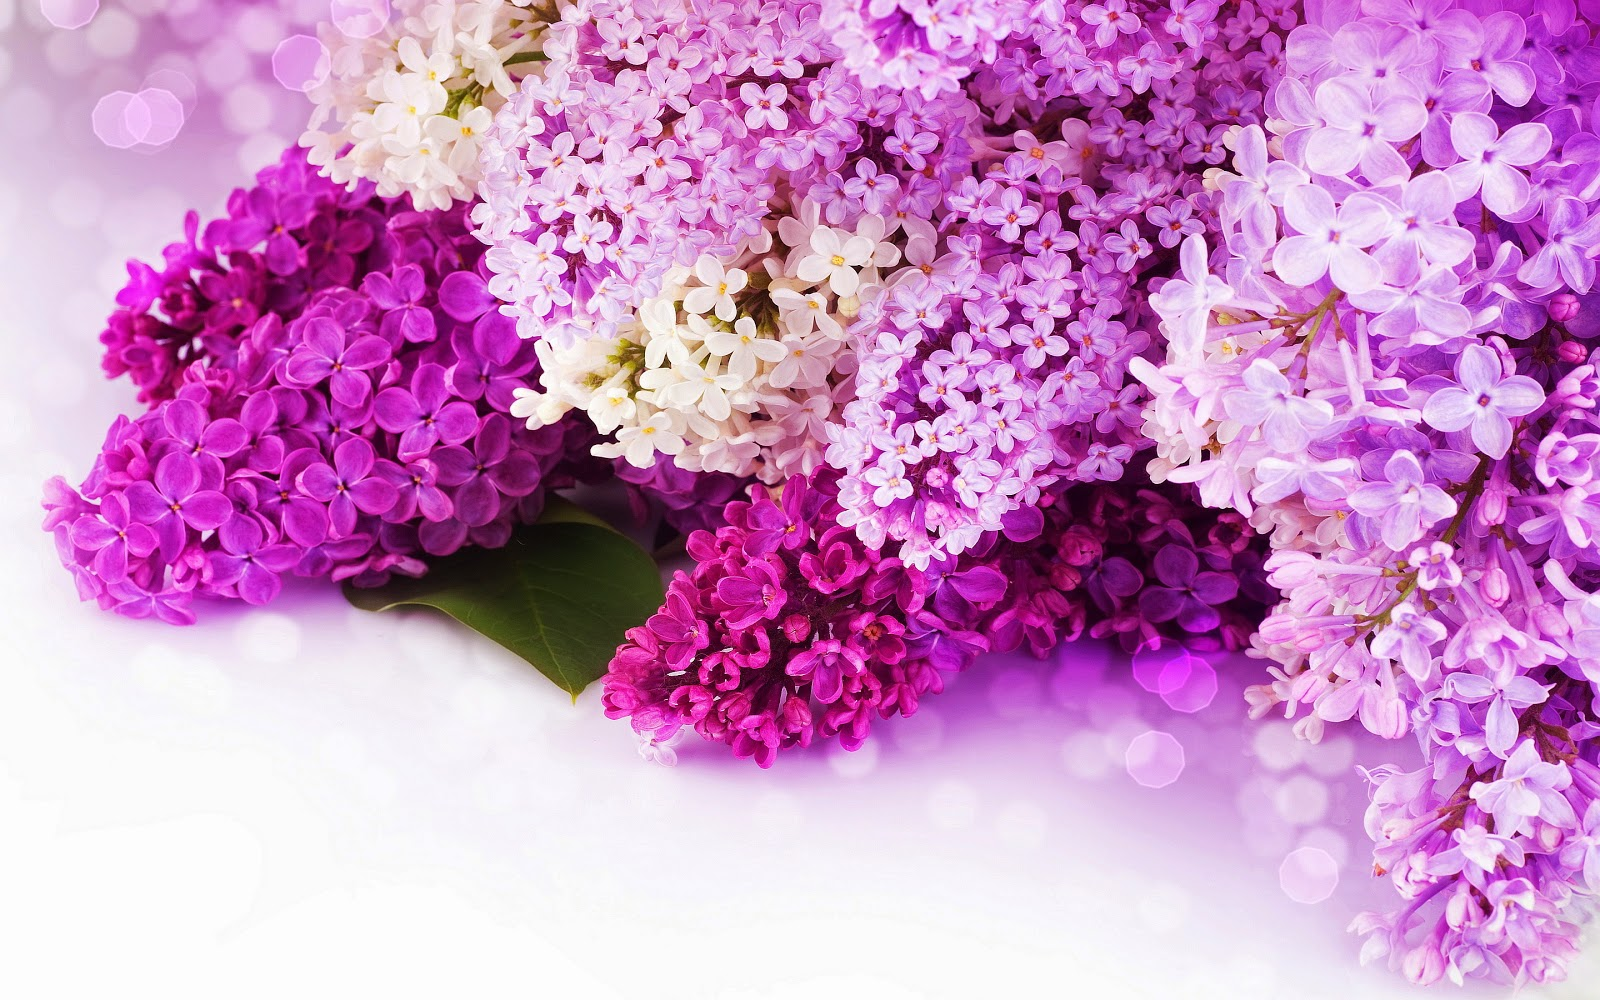 http://www.mrwallpaper.com/wallpapers/lilac-purple-flowers.jpg